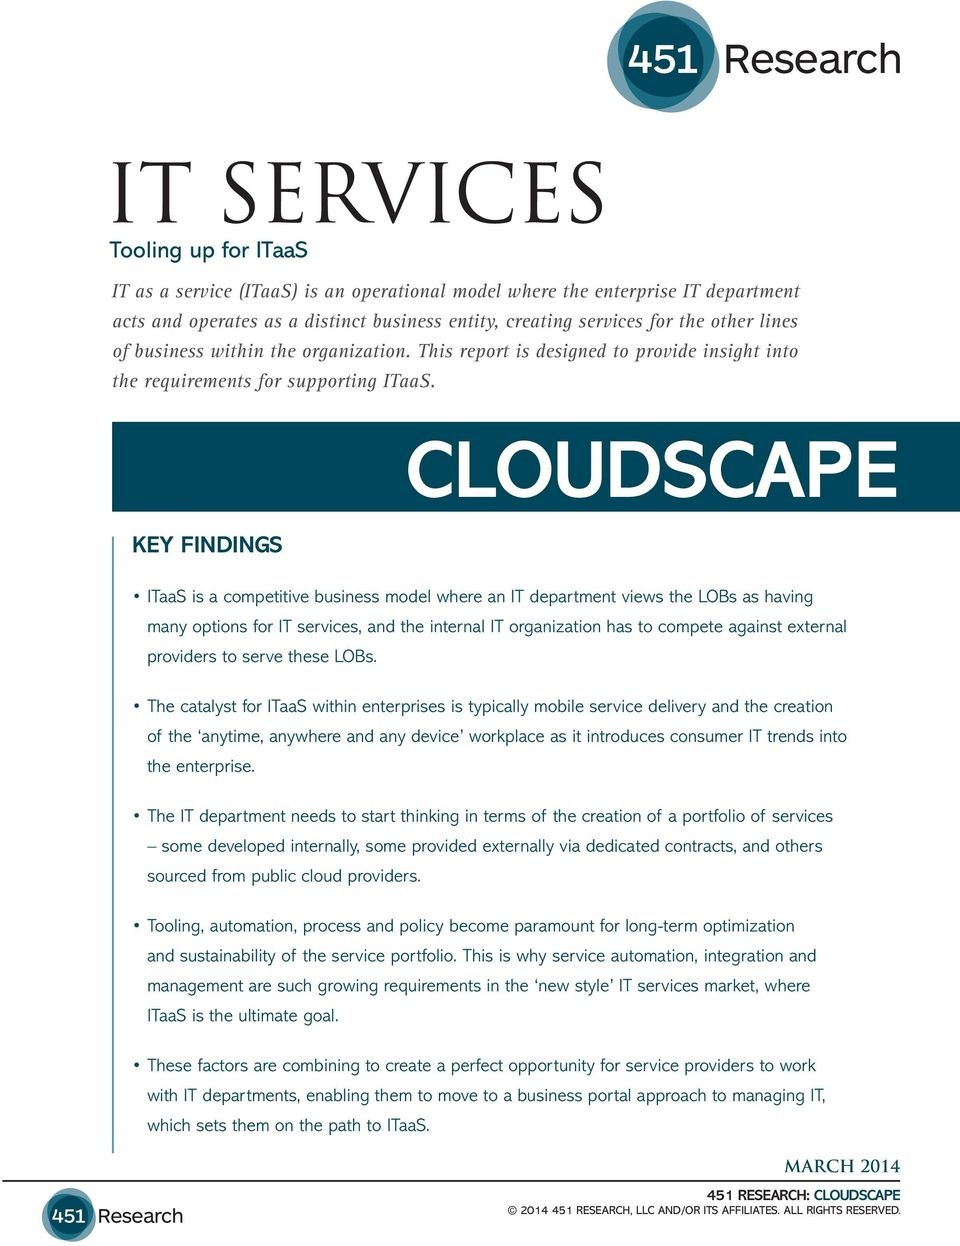 CLOUDSCAPE KEY FINDINGS ITaaS is a competitive business model where an IT department views the LOBs as having many options for IT services, and the internal IT organization has to compete against